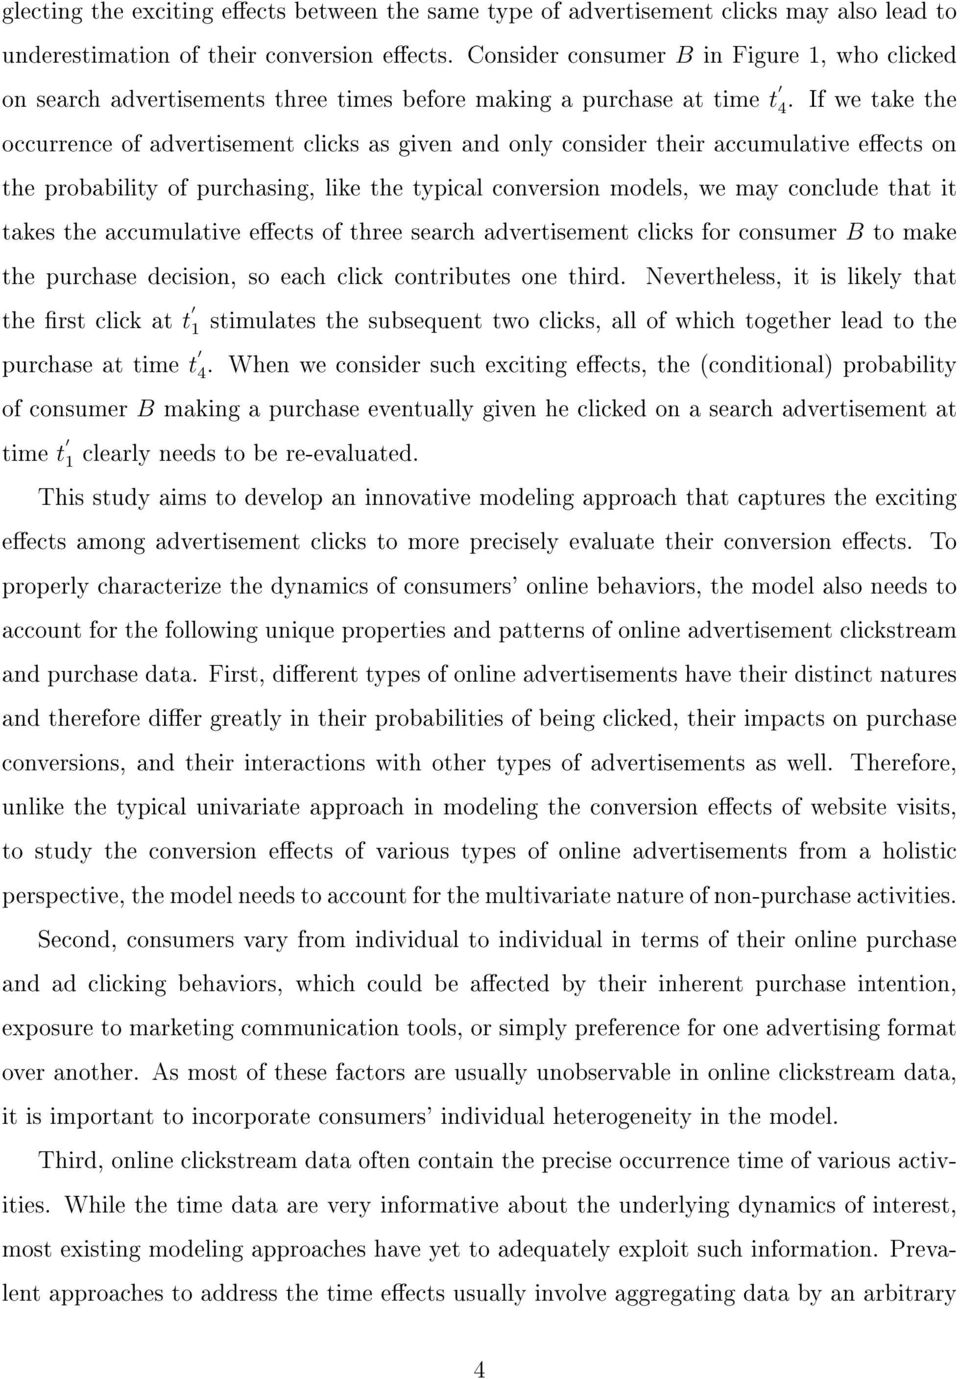 If we take the occurrence of advertisement clicks as given and only consider their accumulative eects on the probability of purchasing, like the typical conversion models, we may conclude that it